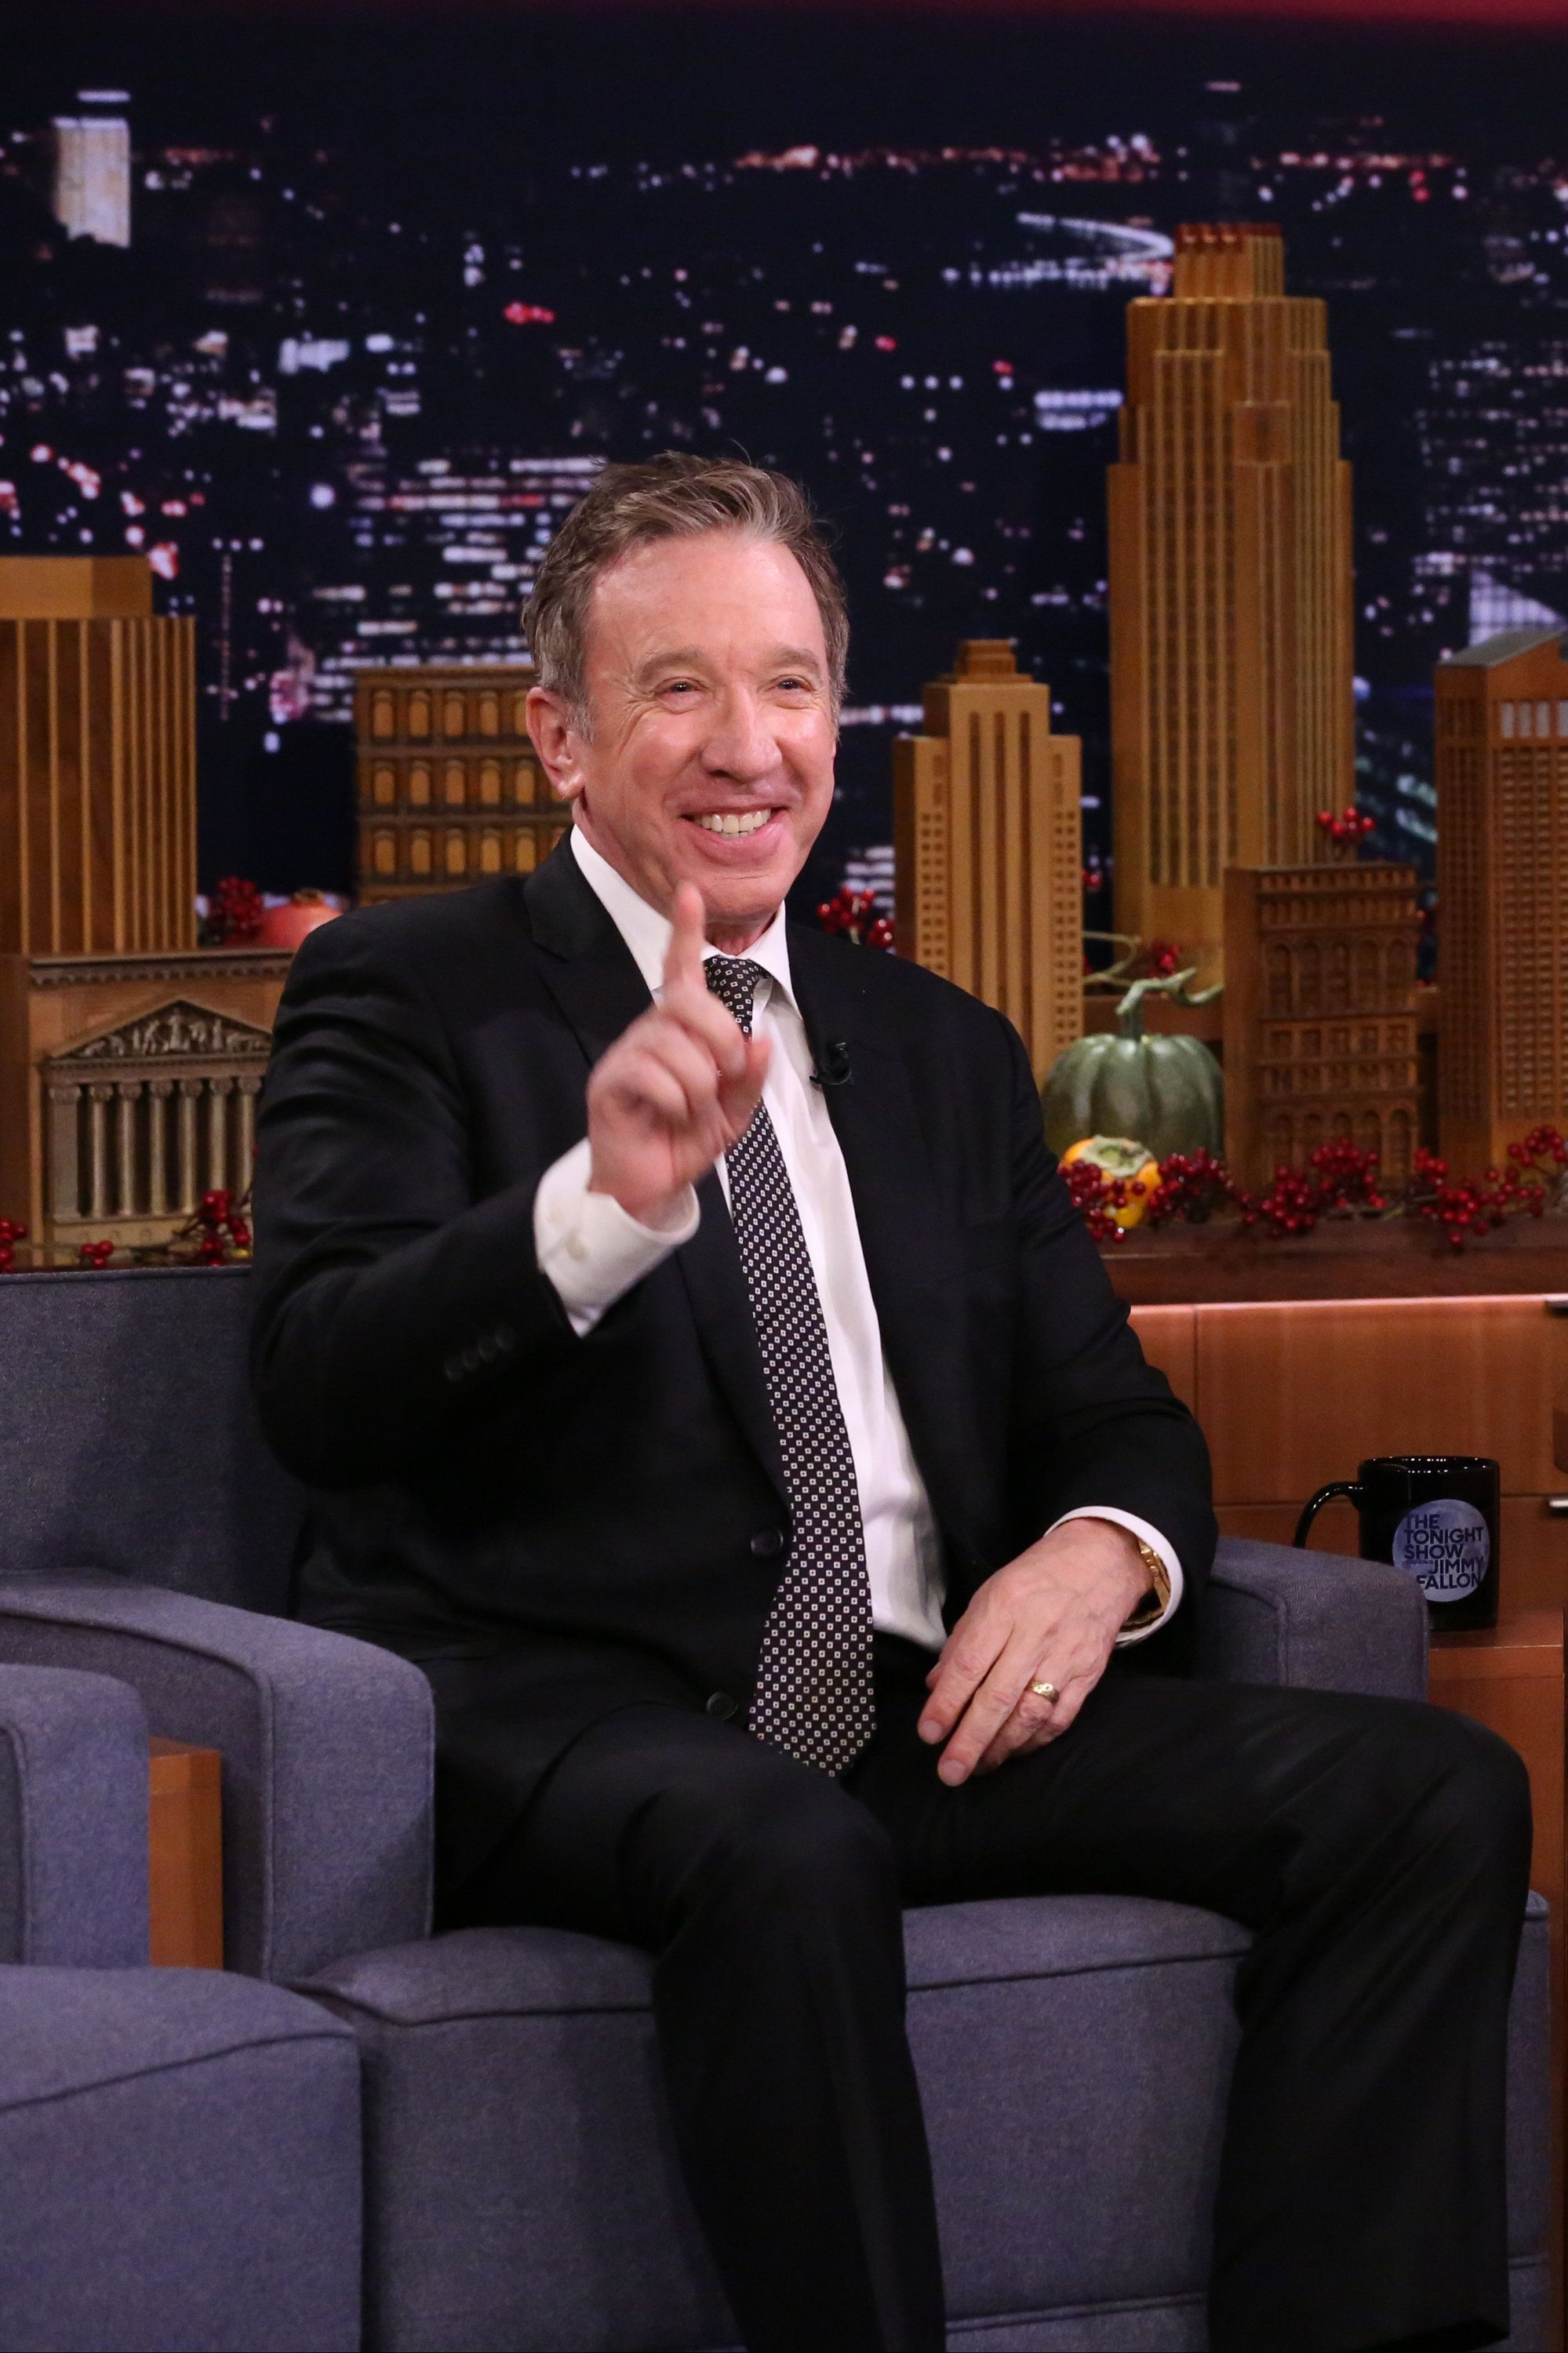 THE TONIGHT SHOW STARRING JIMMY FALLON -- Episode 0966 -- Pictured: Actor Tim Allen during an interview on November 21, 2018 -- (Photo by: Andrew Lipovsky/NBC/NBCU Photo Bank via Getty Images)